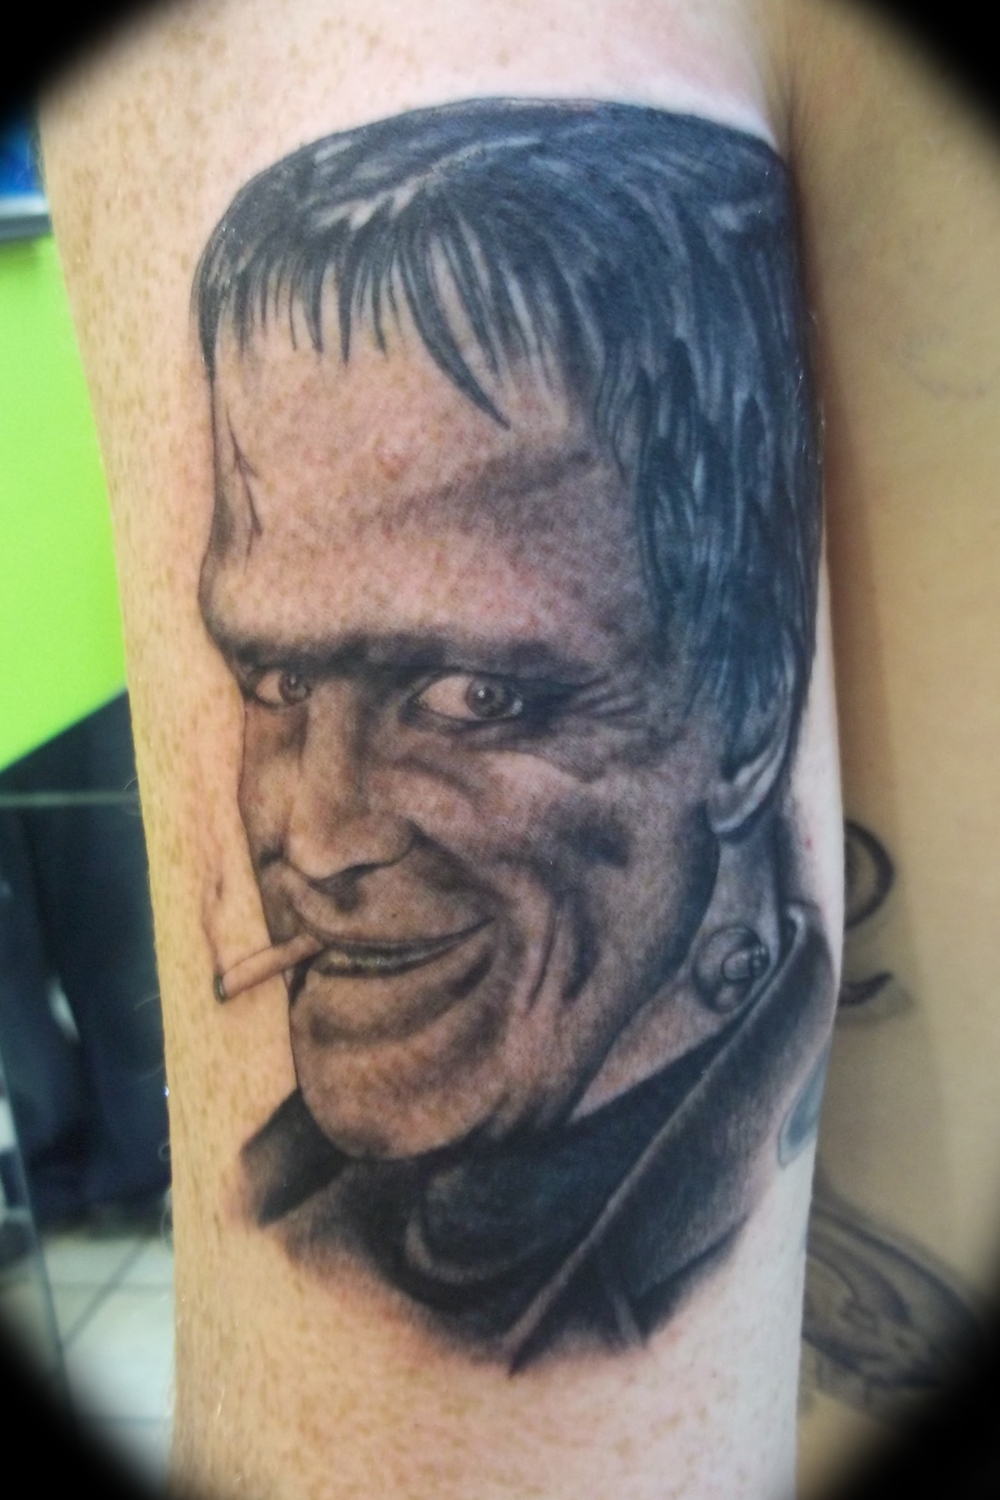 herman munster cropped.jpg